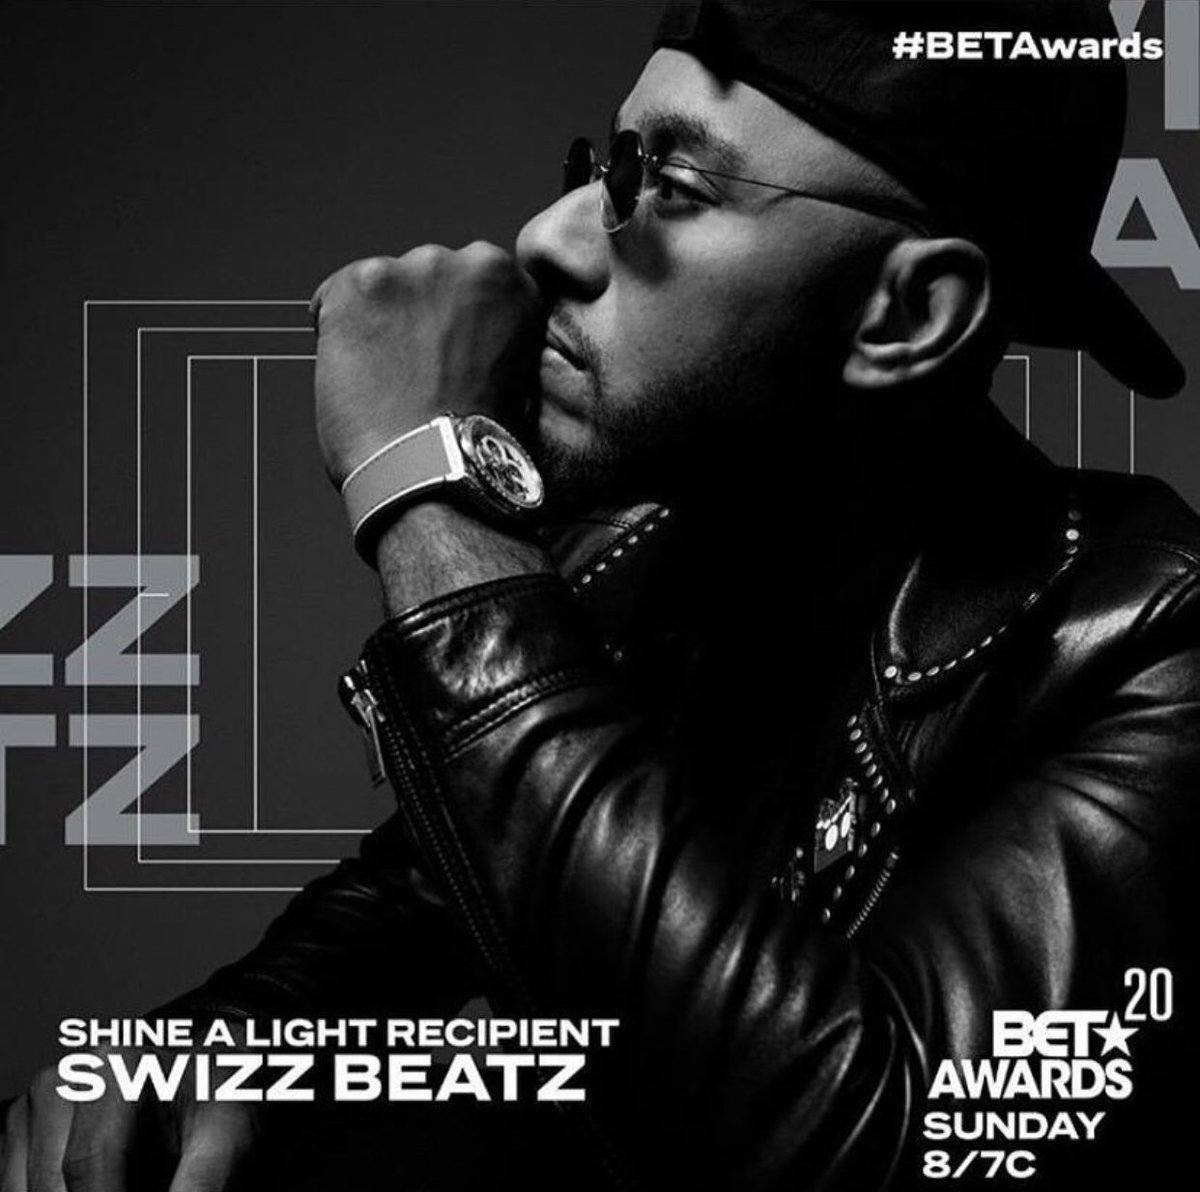 Congratulations to @THEREALSWIZZZ on being this year's @BETAwards Shine A Light Recipient. ✨